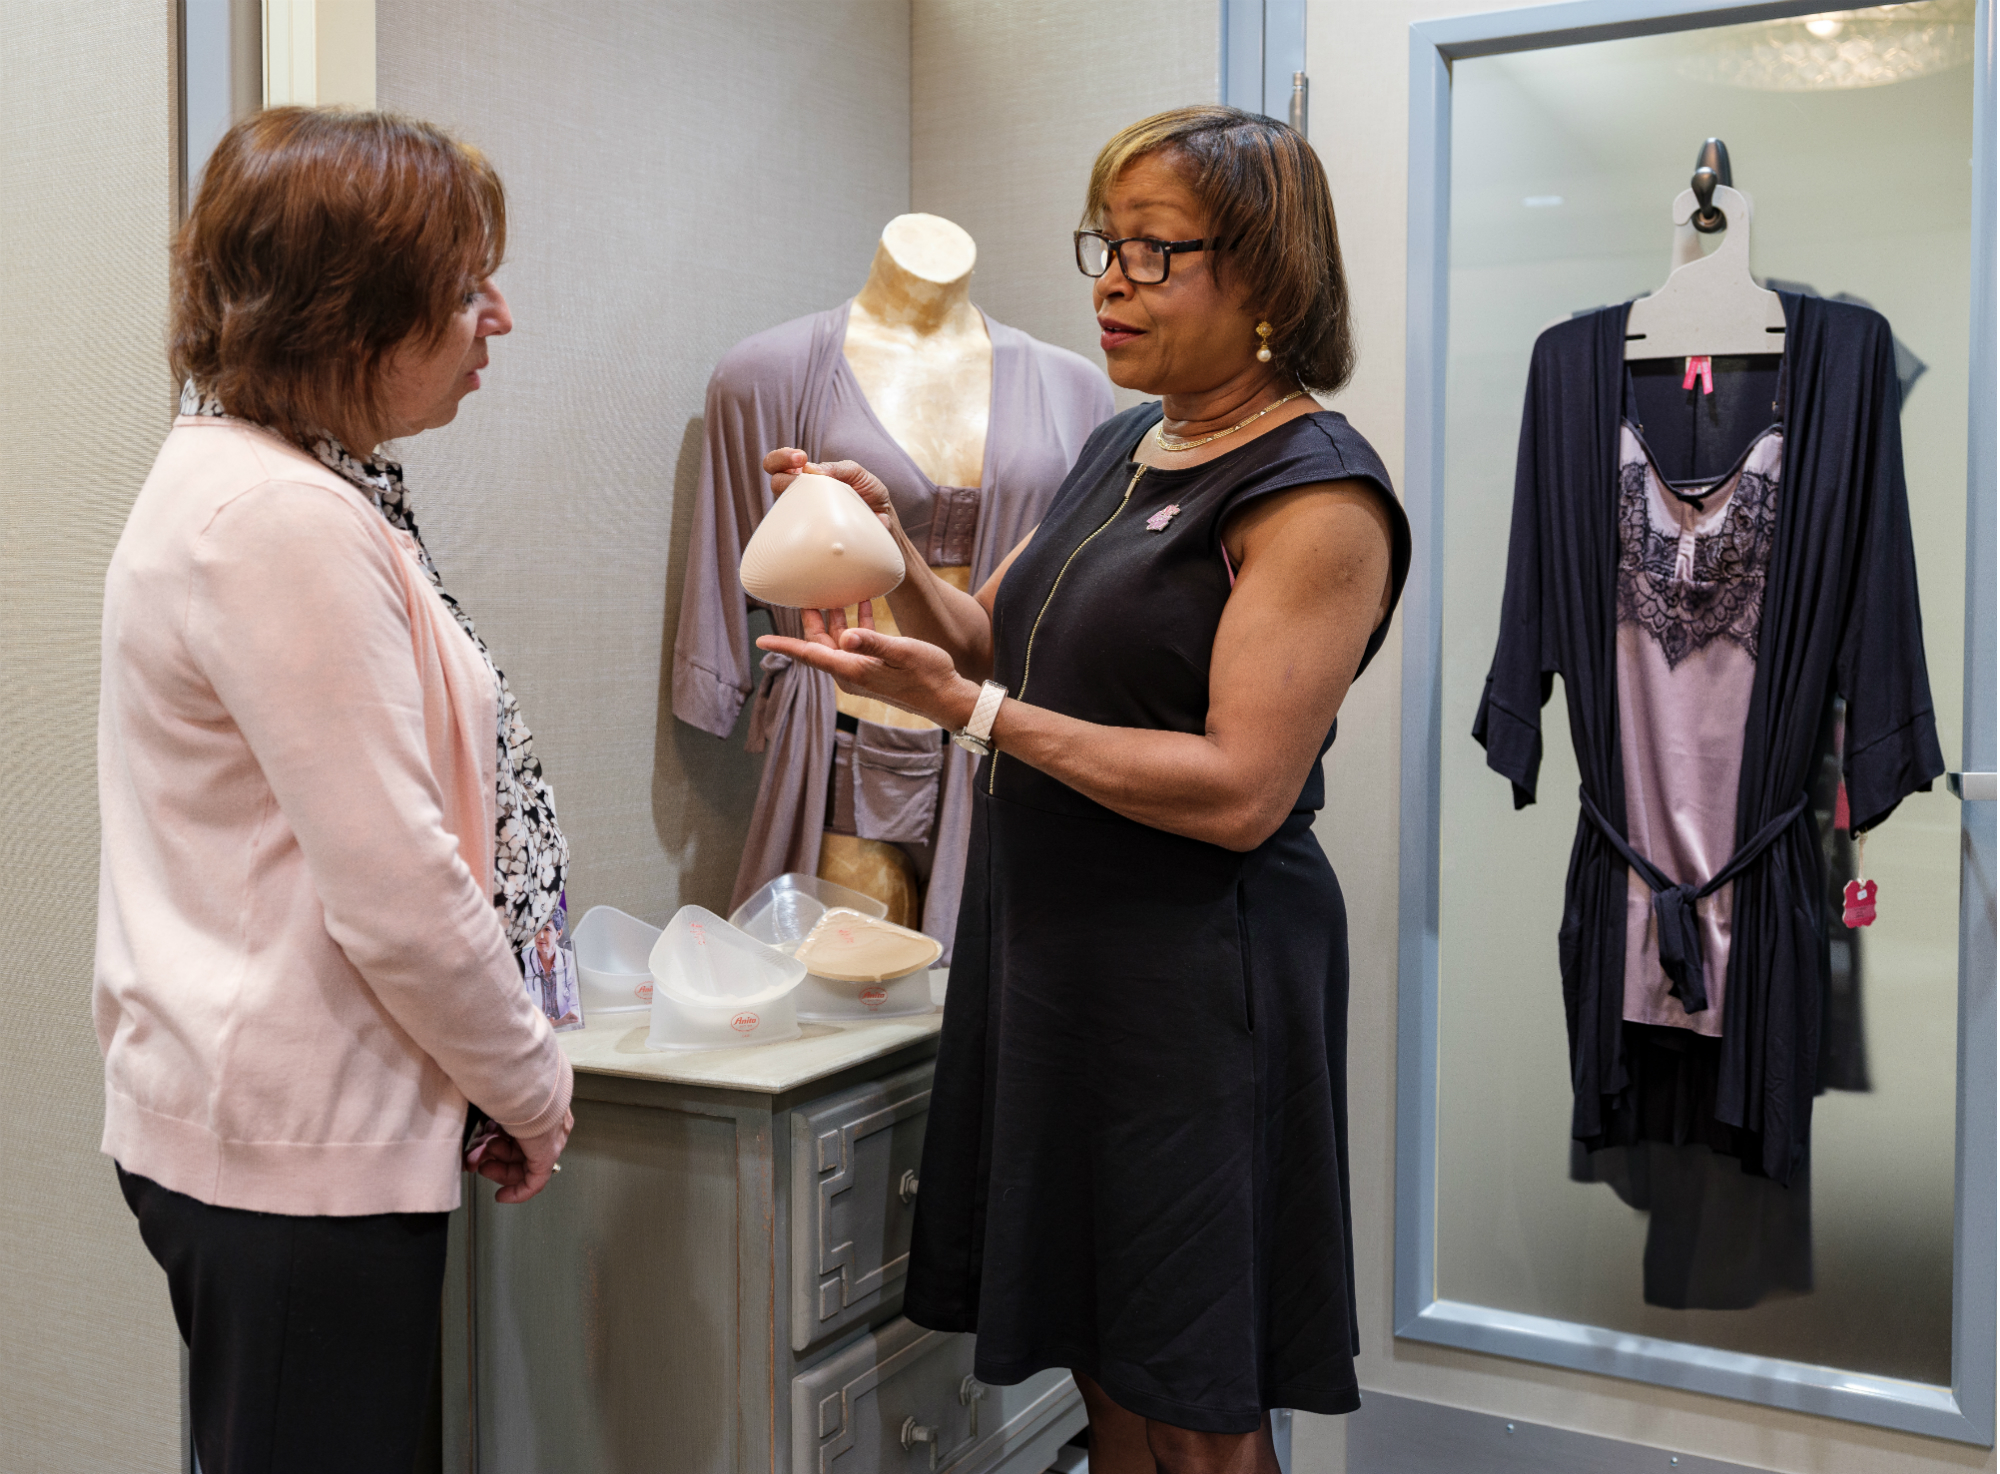 breast prothesis boutiques 185 boston post rd, orange, ct 06477 - saxon-kent boutique - free consultation boc-certified staff bill insurance directly custom breast prostheses.